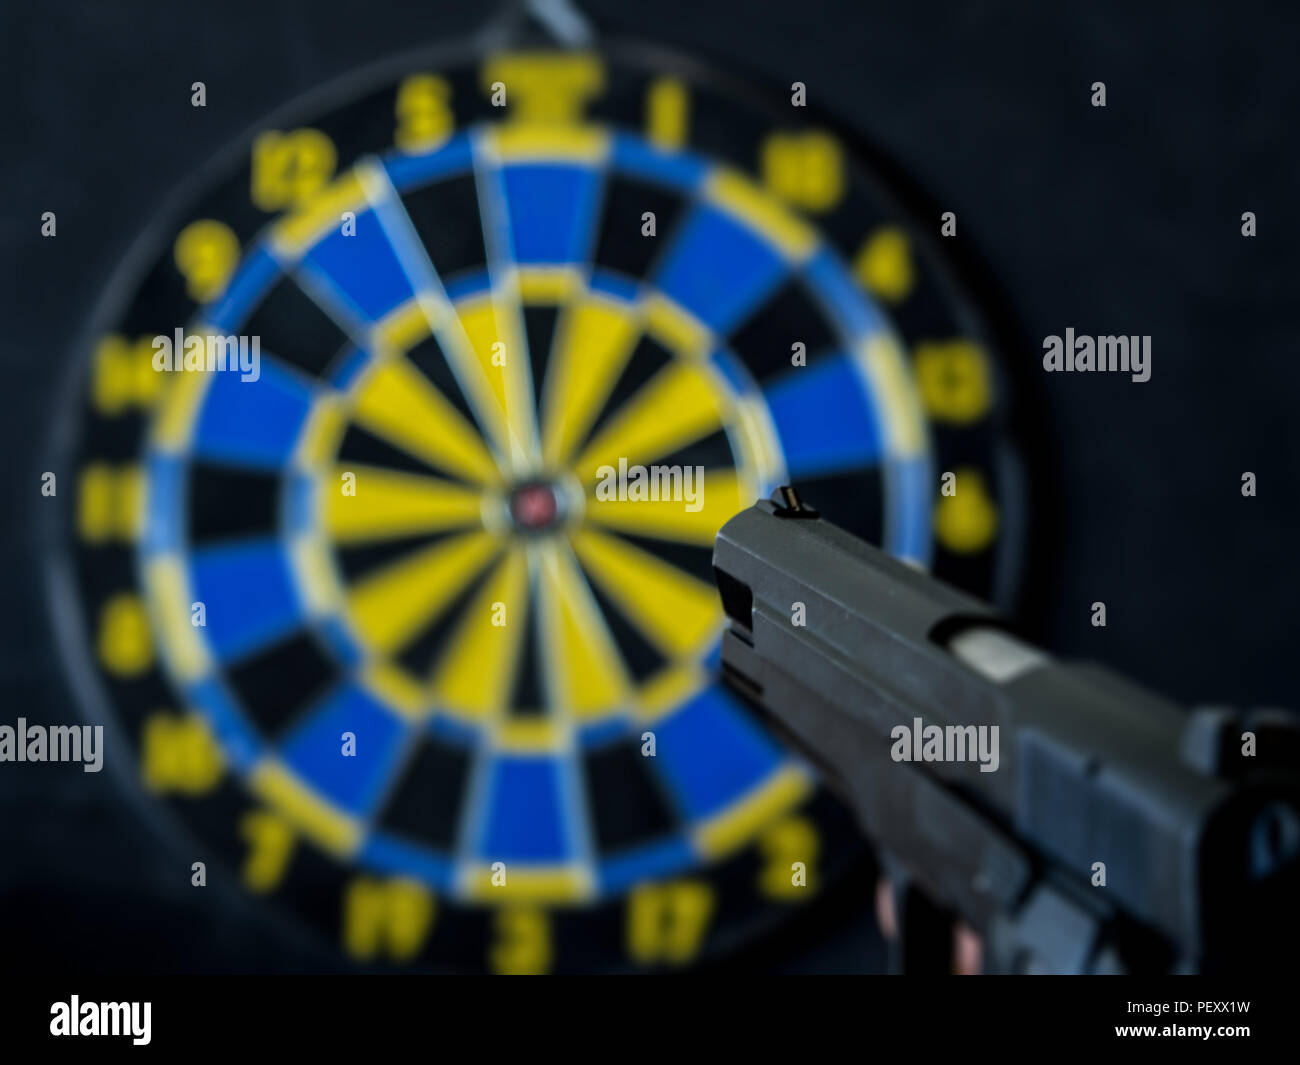 aim at the target with the pistol - Stock Image